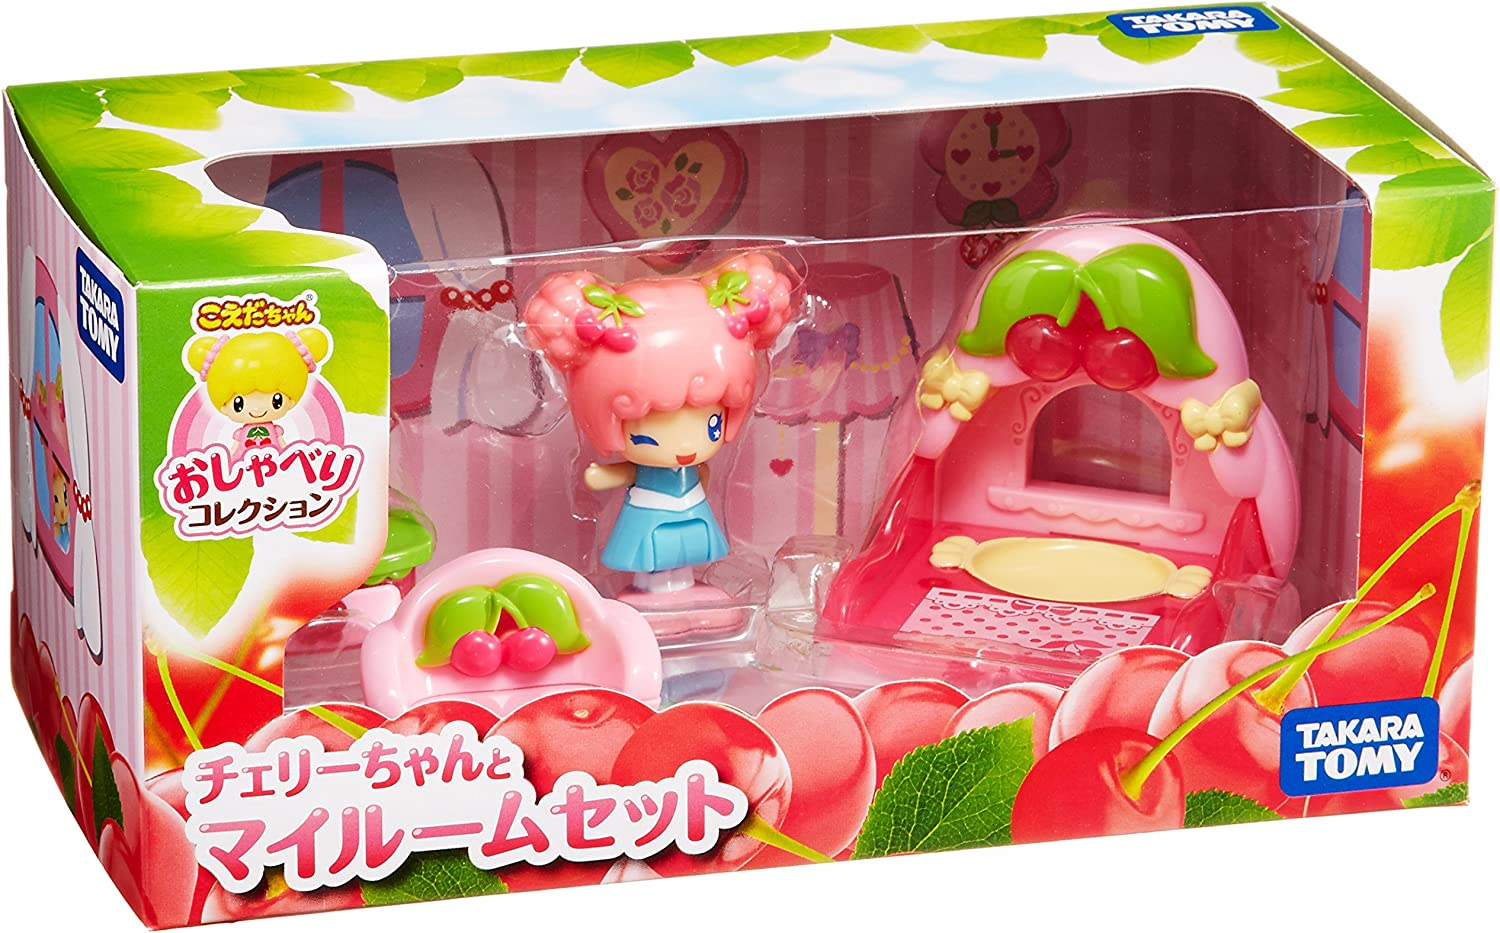 My room set and chatted collection cherry twig Chan Chan (japan import)